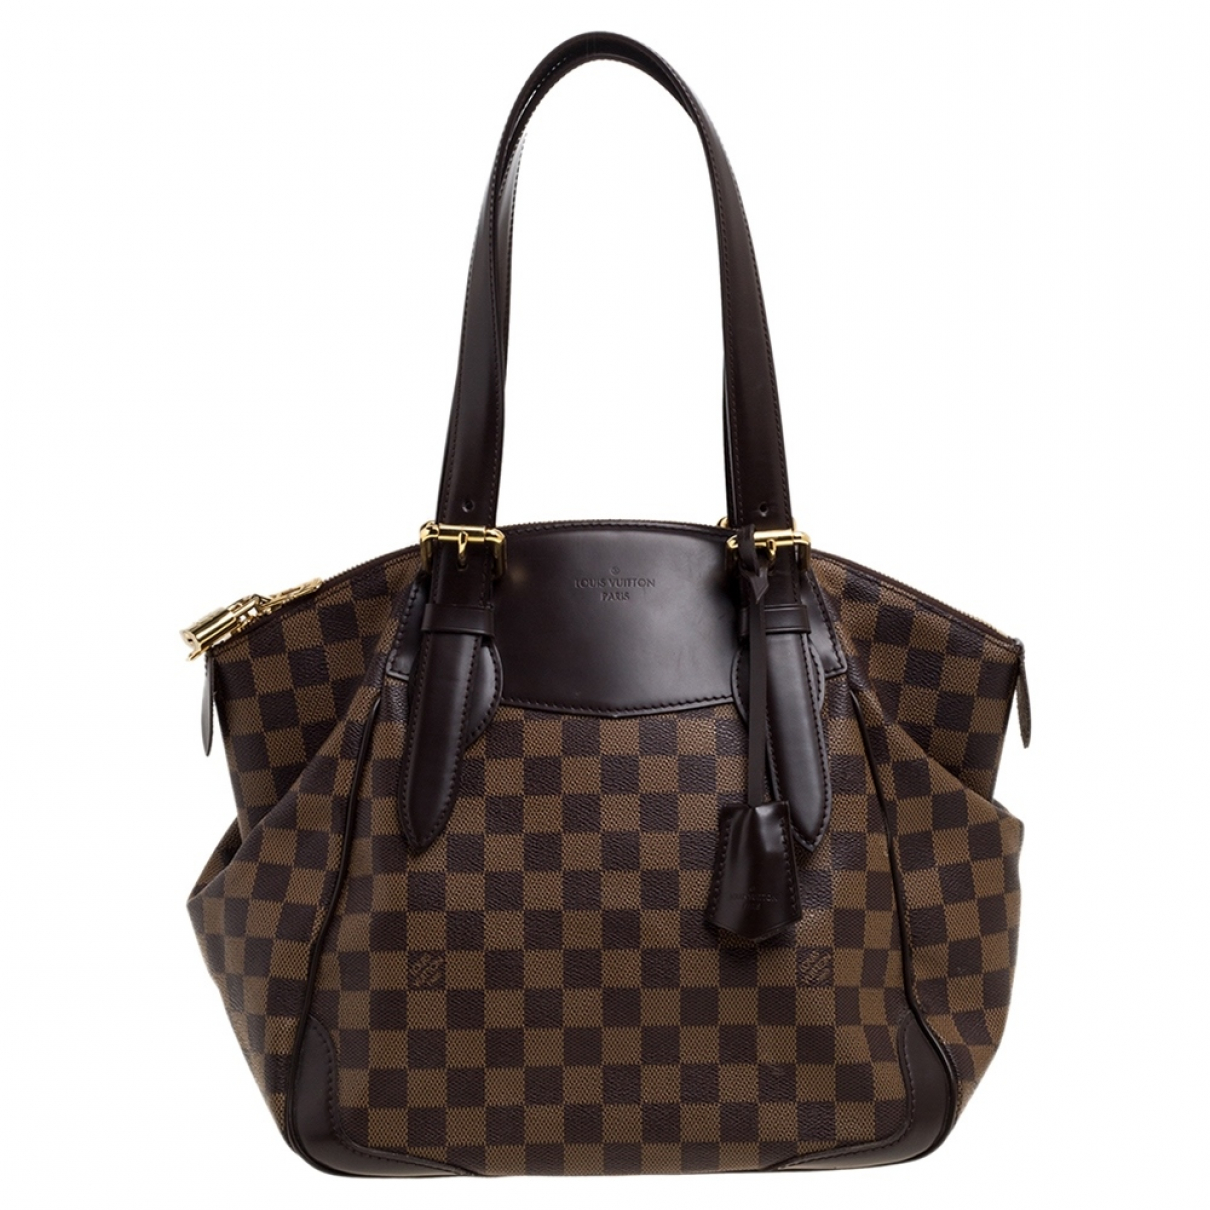 Louis Vuitton Verona Brown Leather handbag for Women N